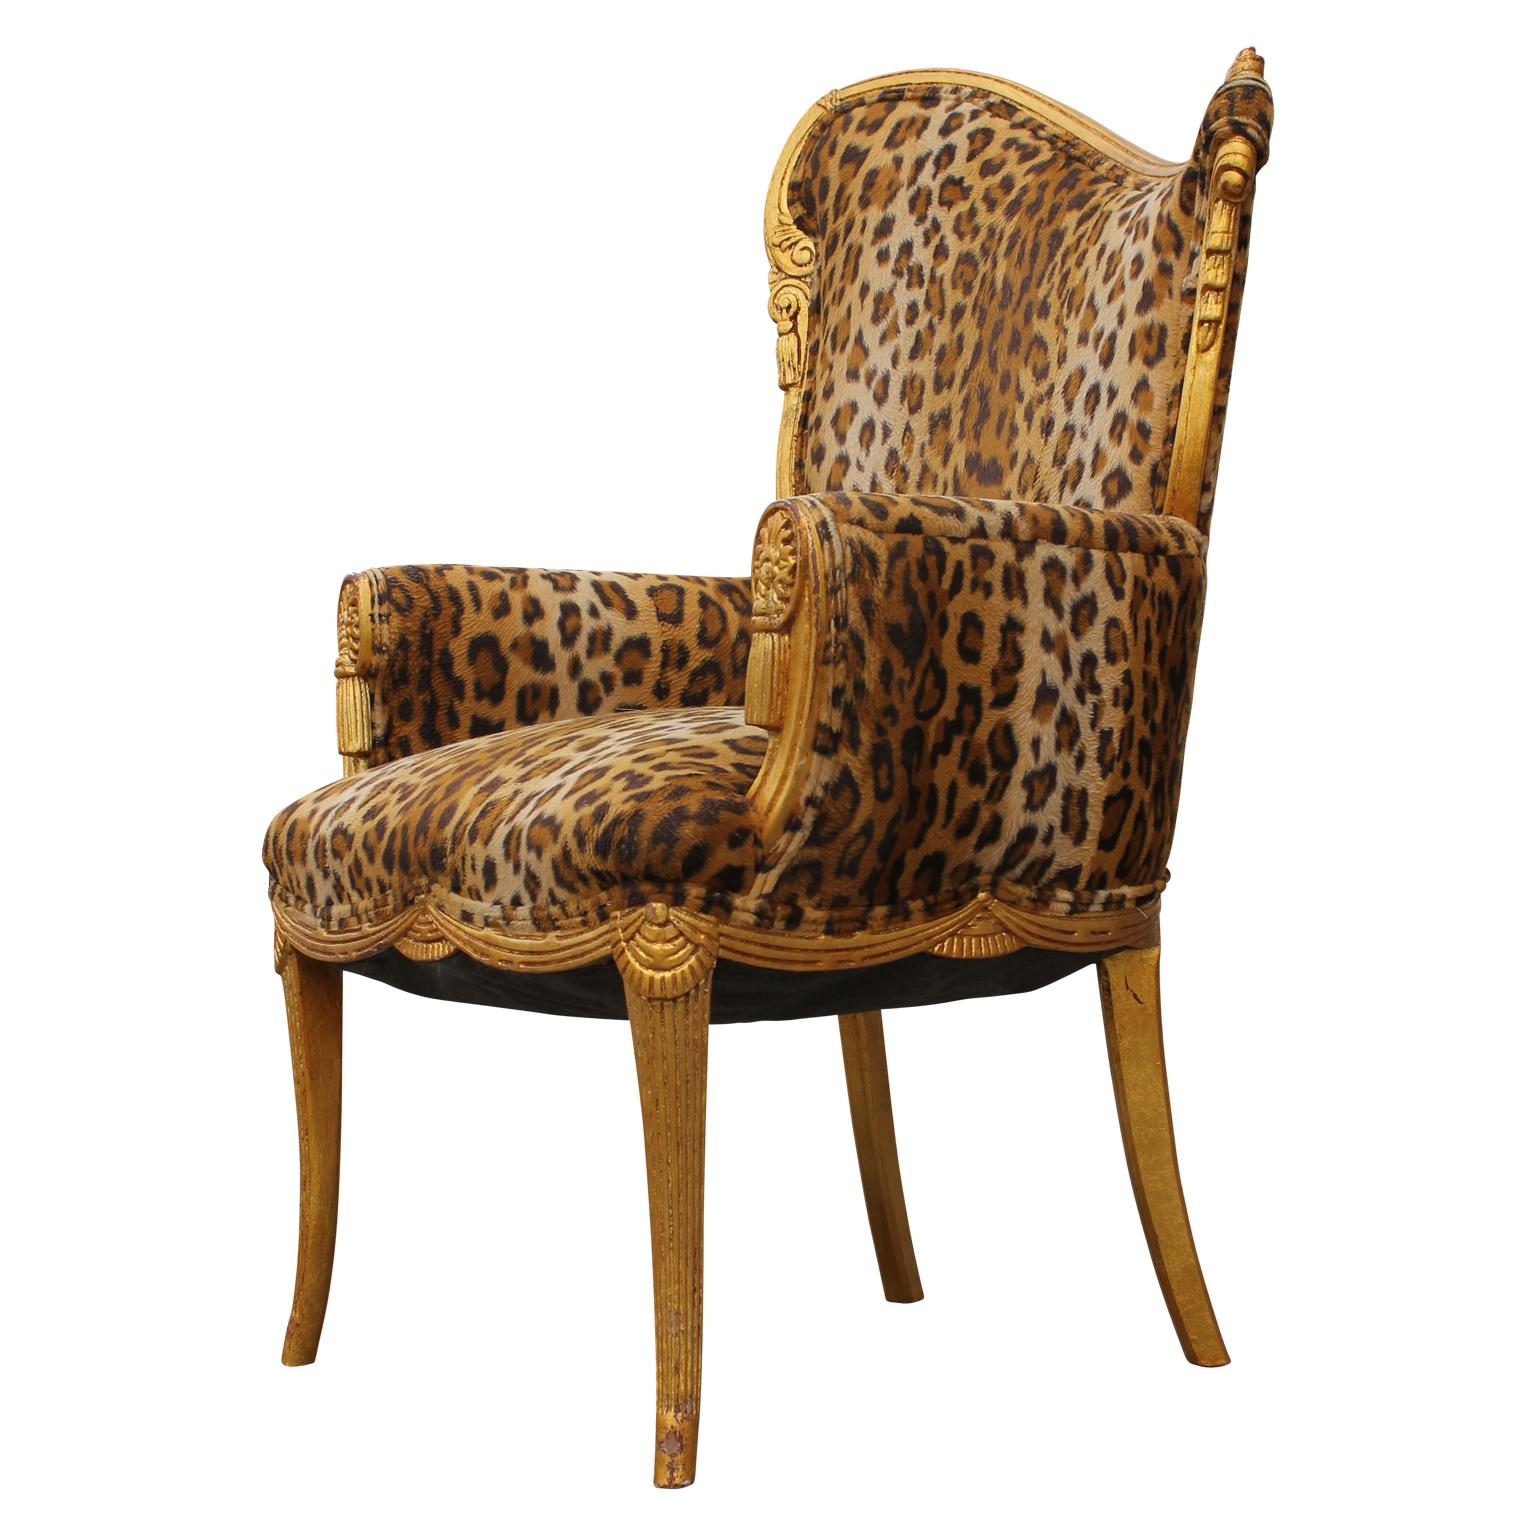 Pair Of Gold Leaf Cheetah Print Reupholstered Fireside Chairs